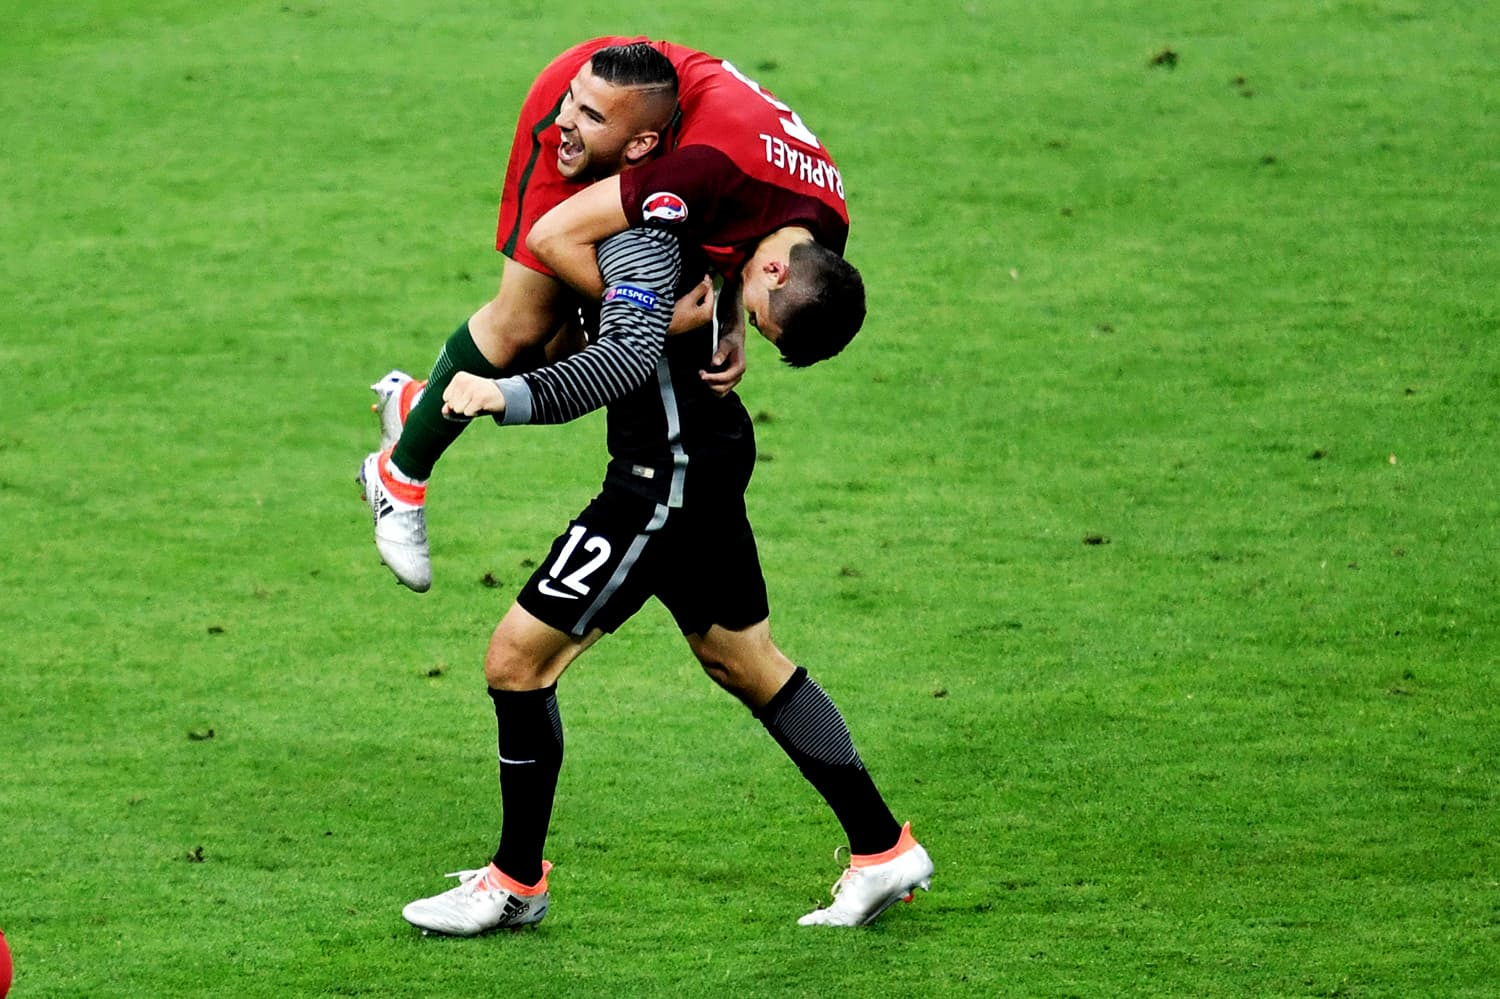 Portugal's goalkeeper Anthony Lopes and Portugal's defender Raphael Guerreiro celebrate. — AFP